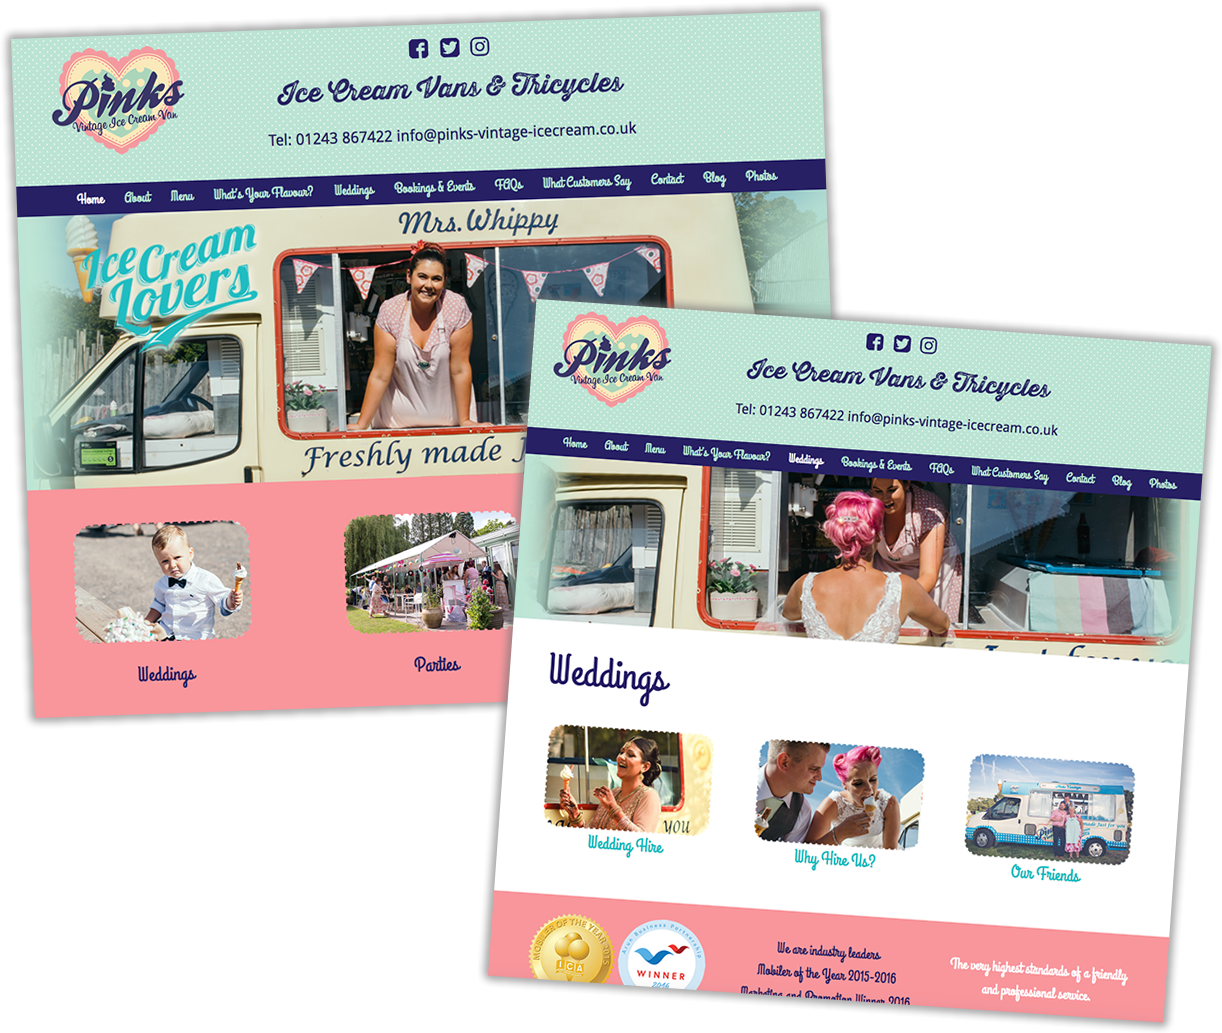 Web design - Pinks Vintage Ice Cream Vans